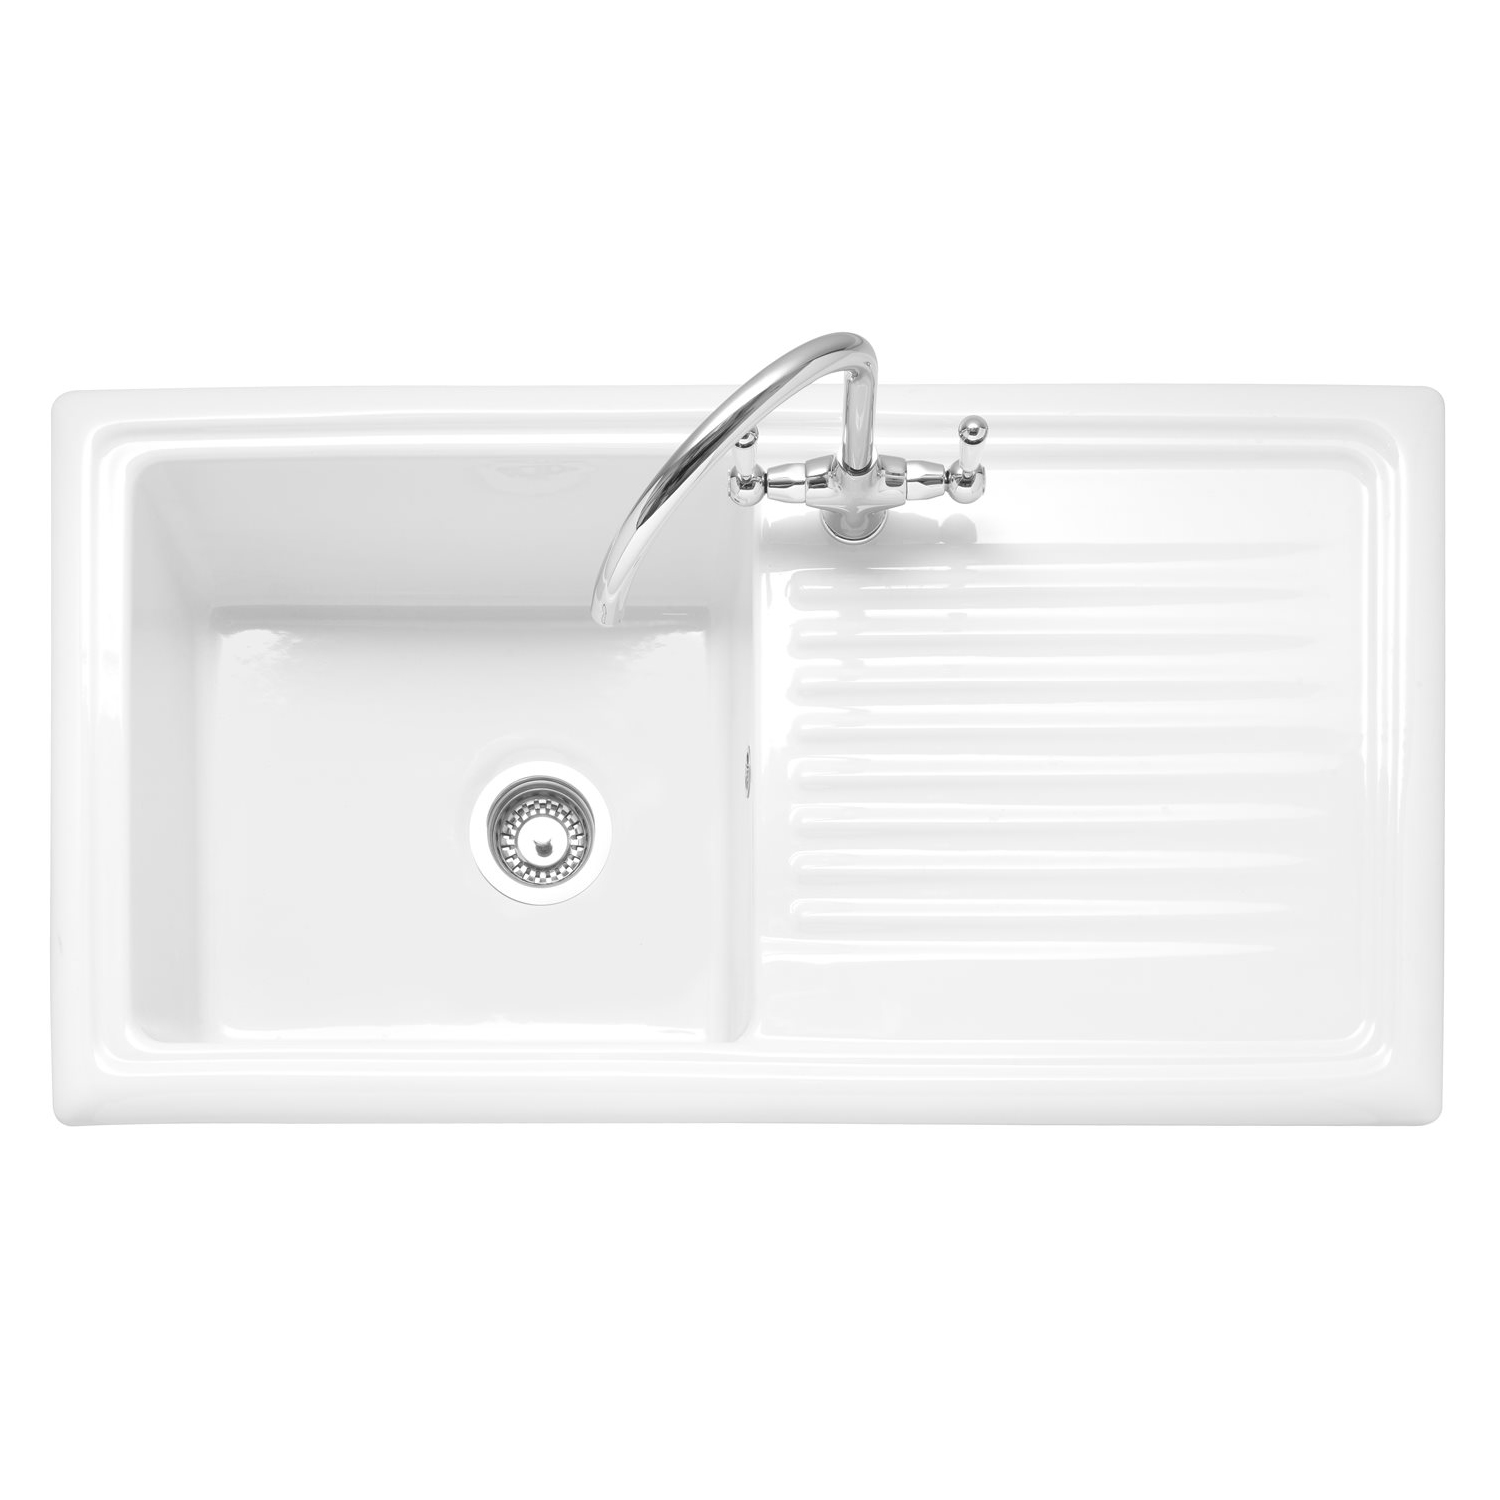 inset kitchen sink caple wiltshire 100 single bowl inset ceramic kitchen sink 1870